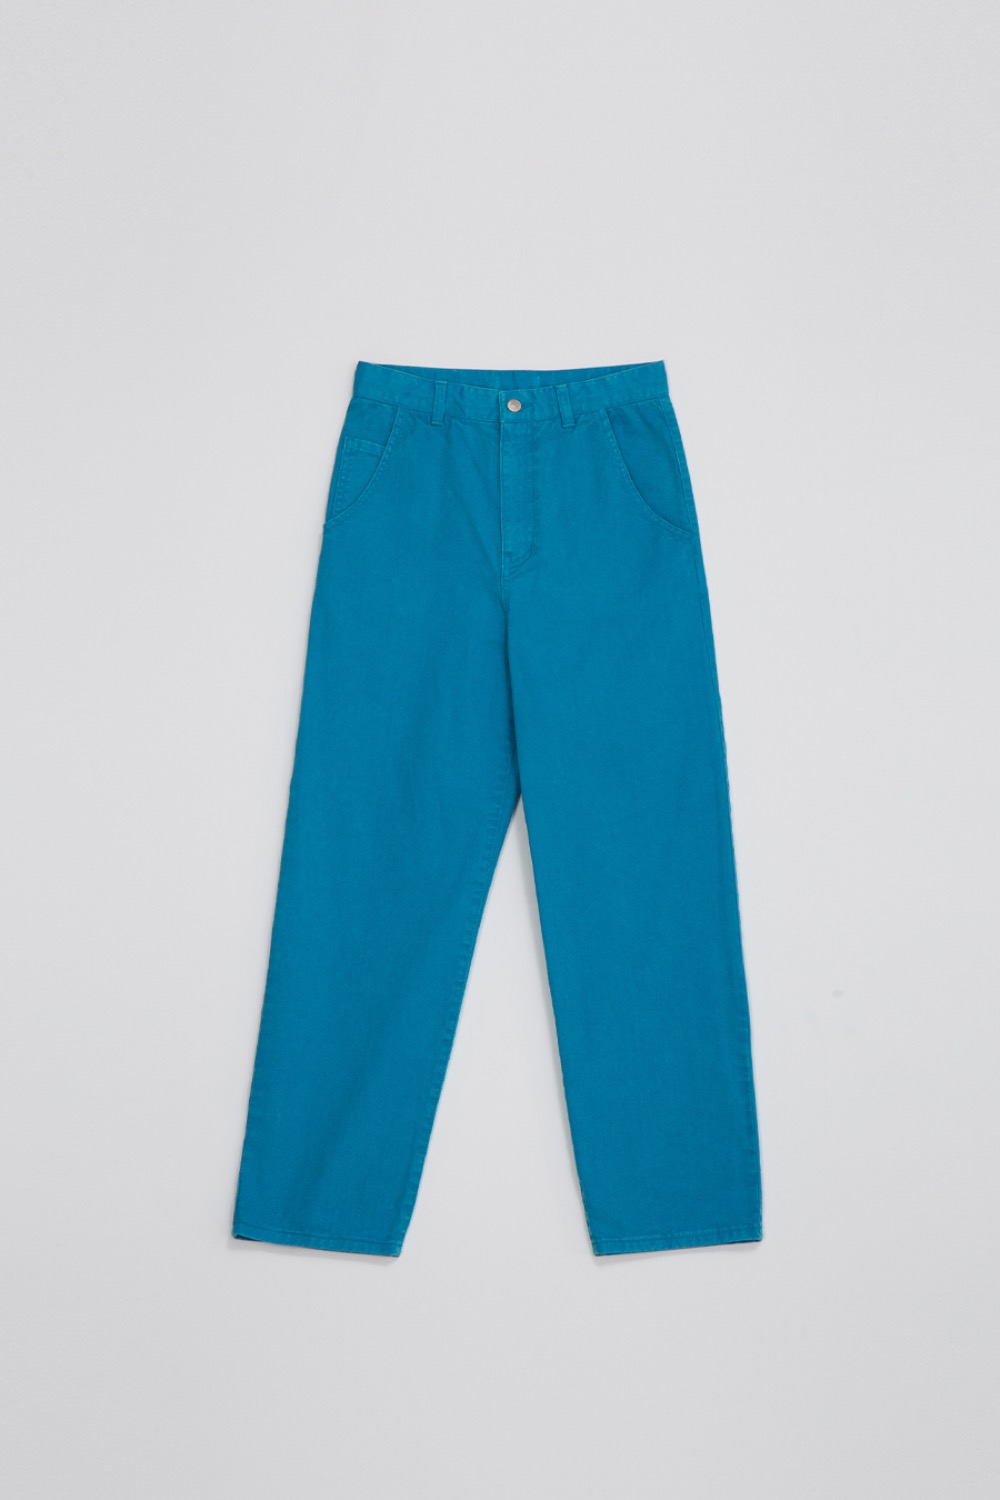 GARMENT DYED PANTS - AQUA BLUE COTTON